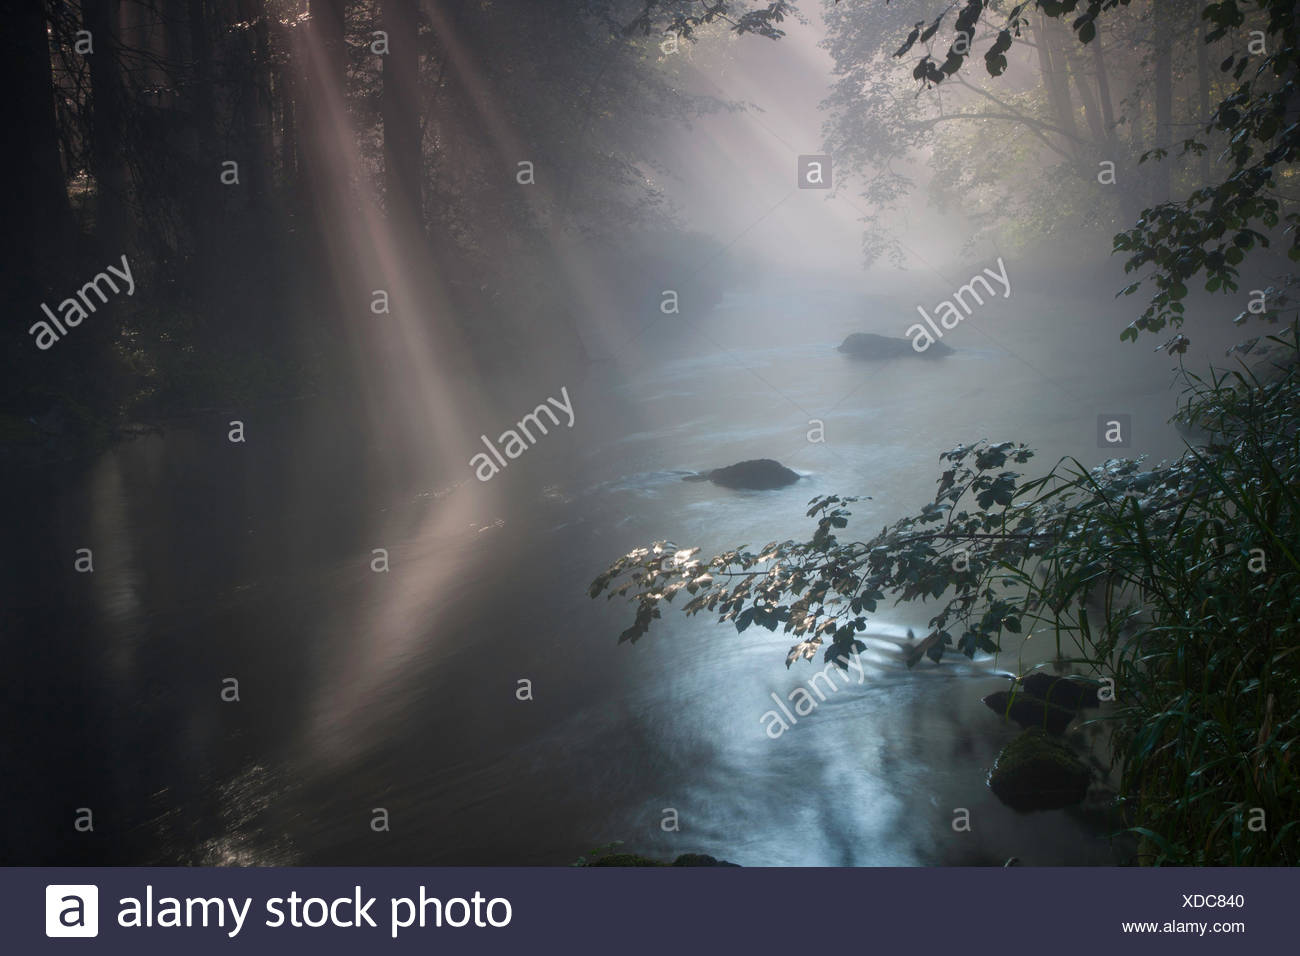 river in a forest in morning damp, Germany, Saxony, Vogtland, Triebtal - Stock Image